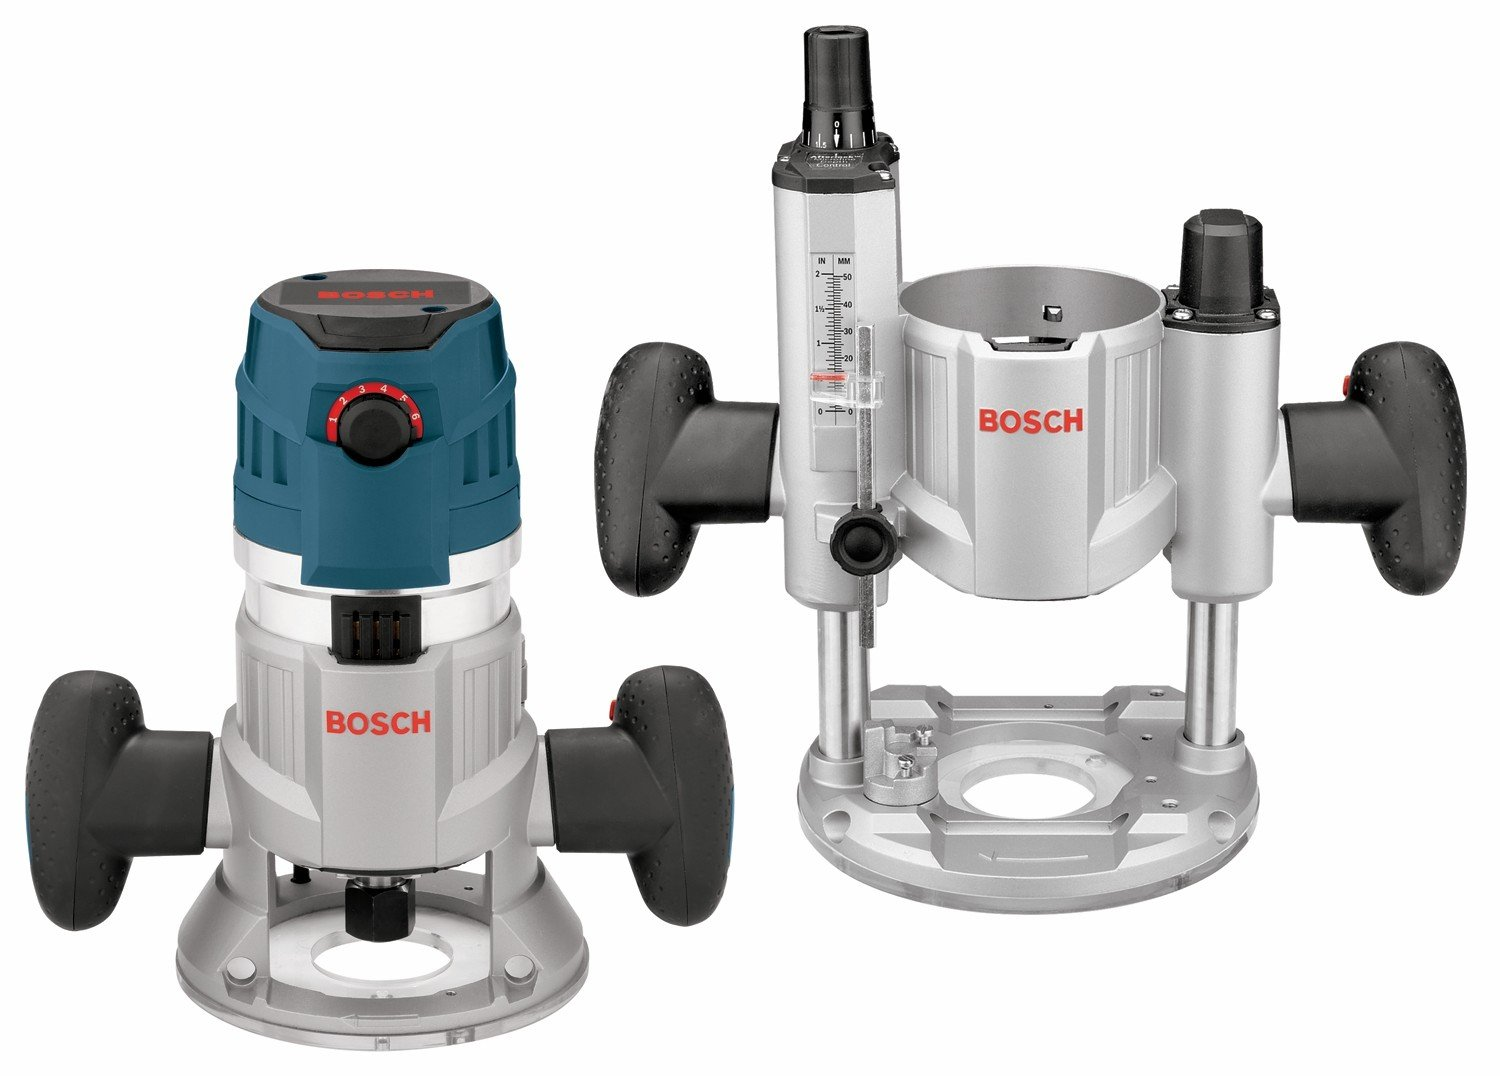 Bosch MRC23EVSK 2.3 HP Combination Plunge & Fixed-Base Variable Speed Router Pack by Bosch (Image #1)